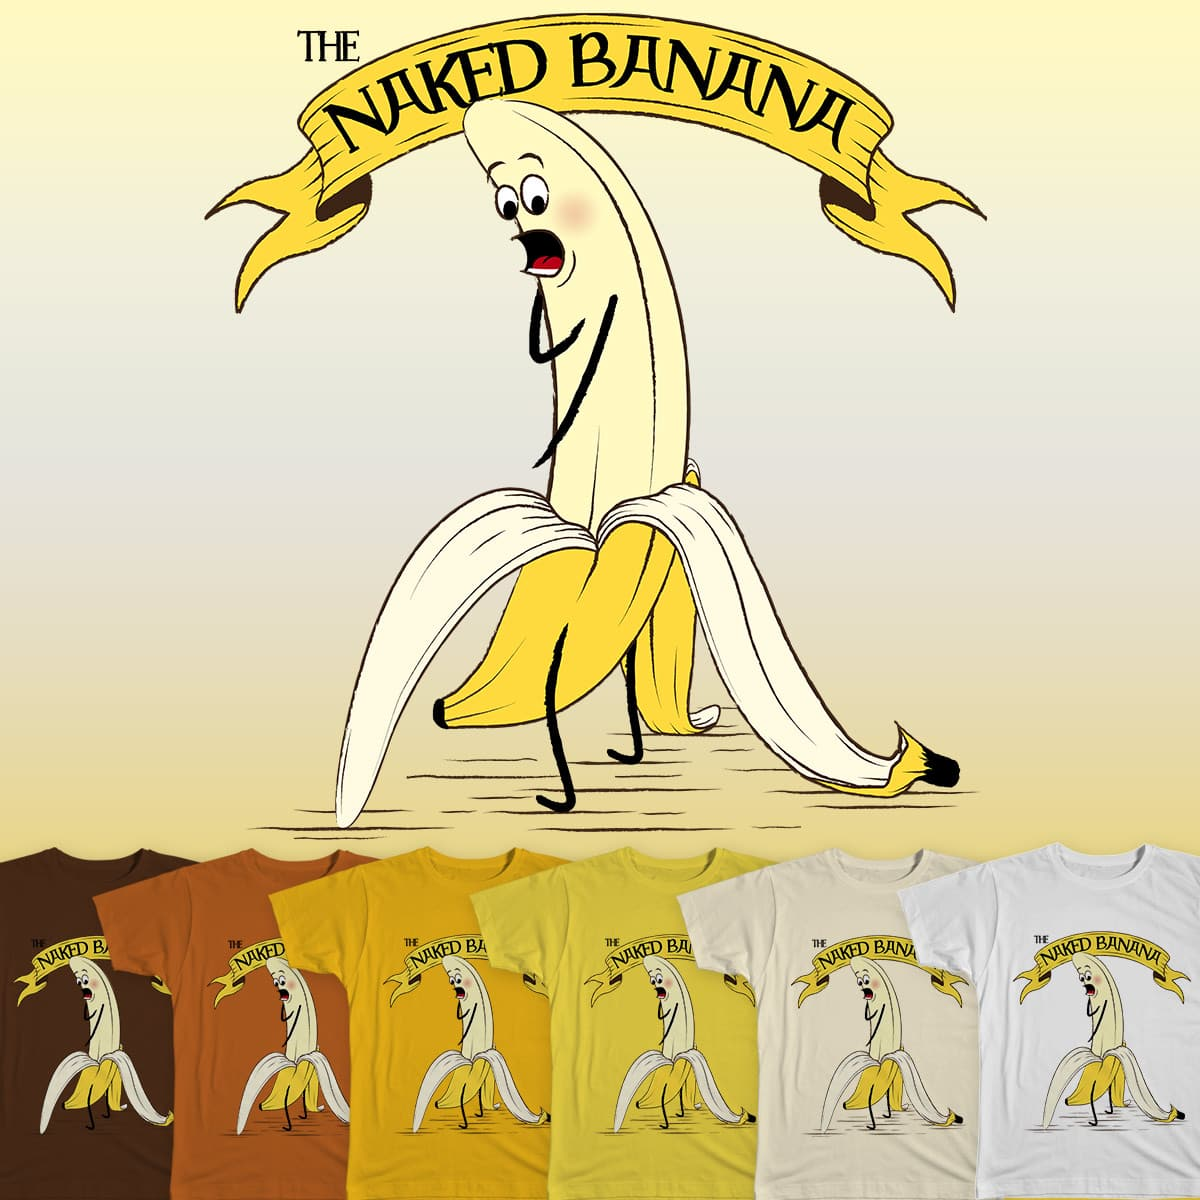 Score The Naked Banana by SwanStarDesigns on Threadless